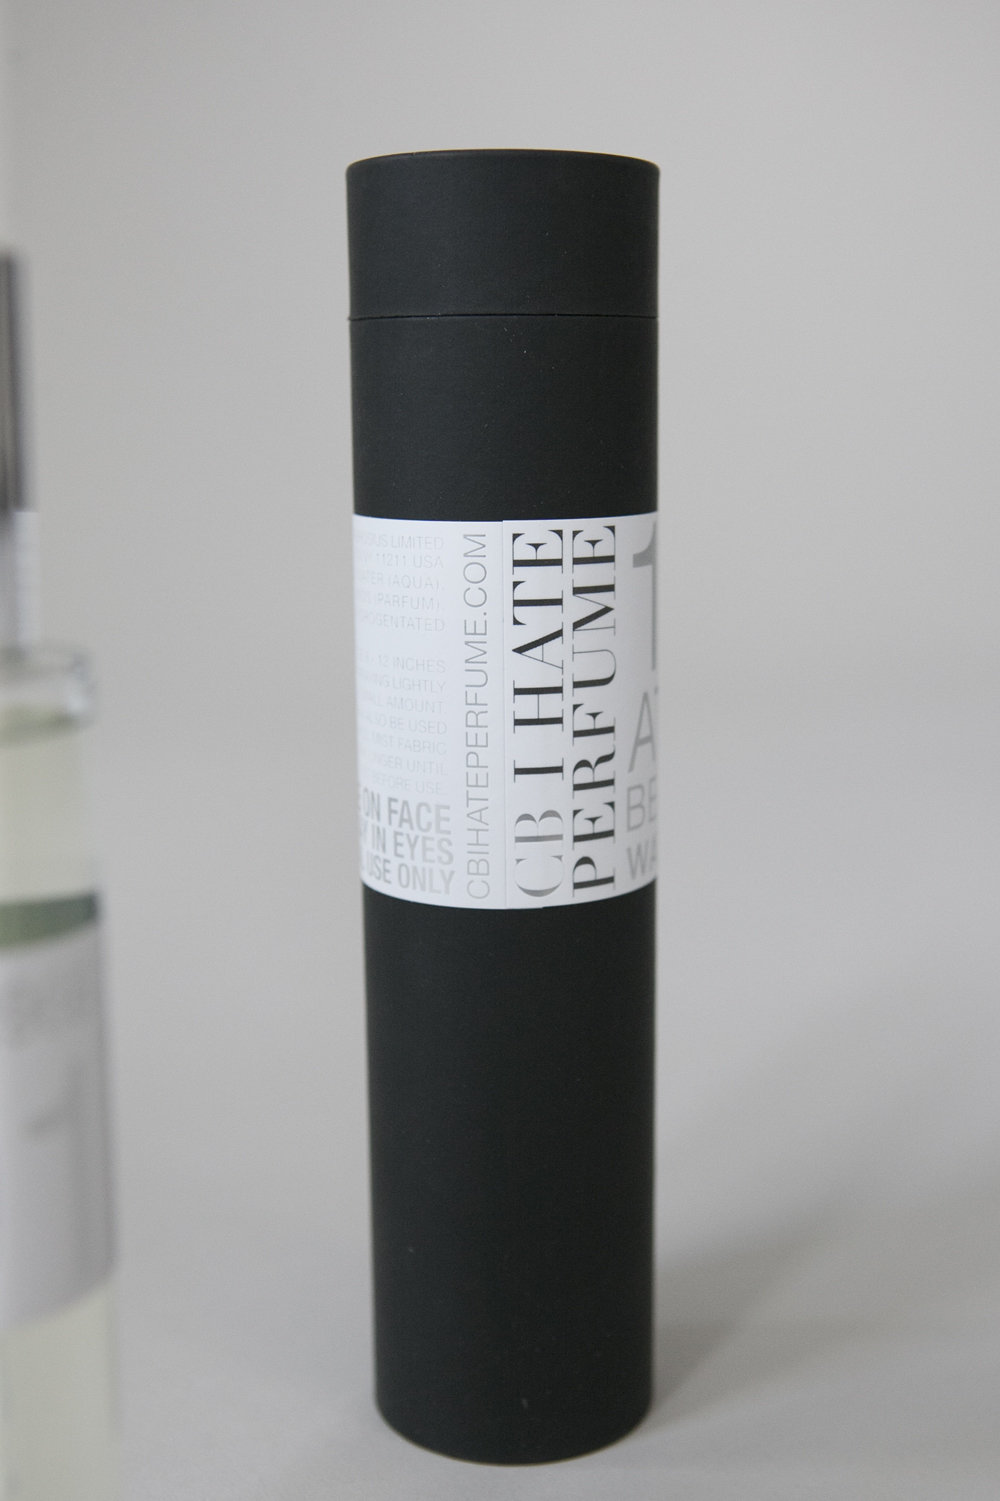 'At the Beach 1966' Water Perfume by CB I Hate Perfume